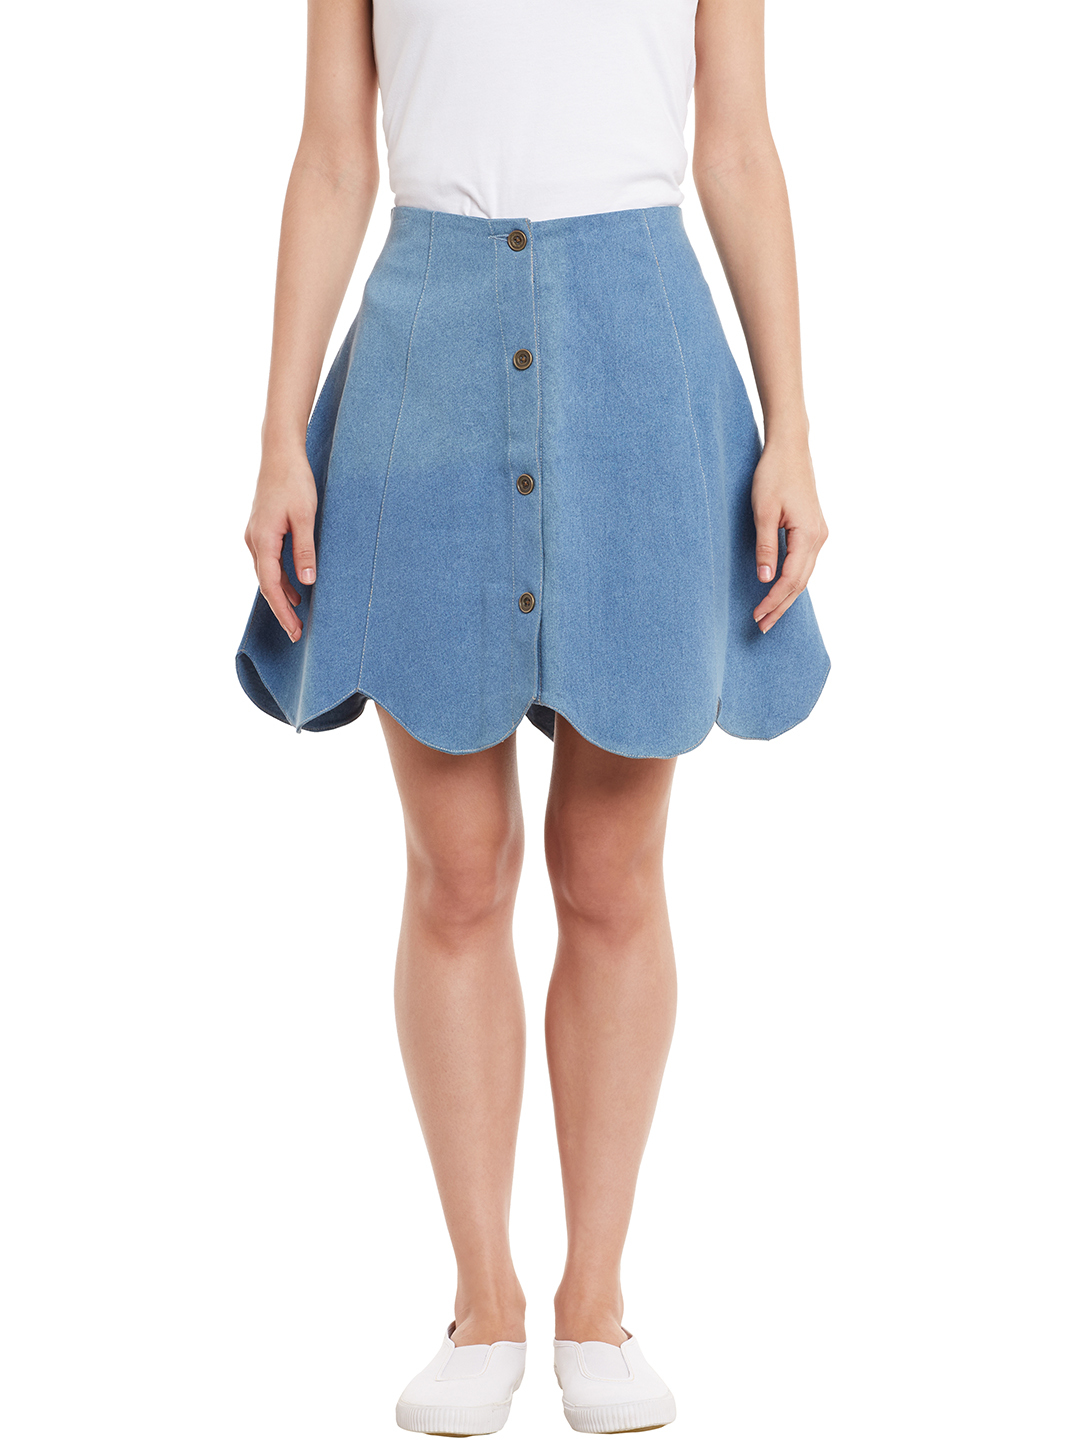 Rider Republic Women's Blue Flare Pleated Skater Skirt